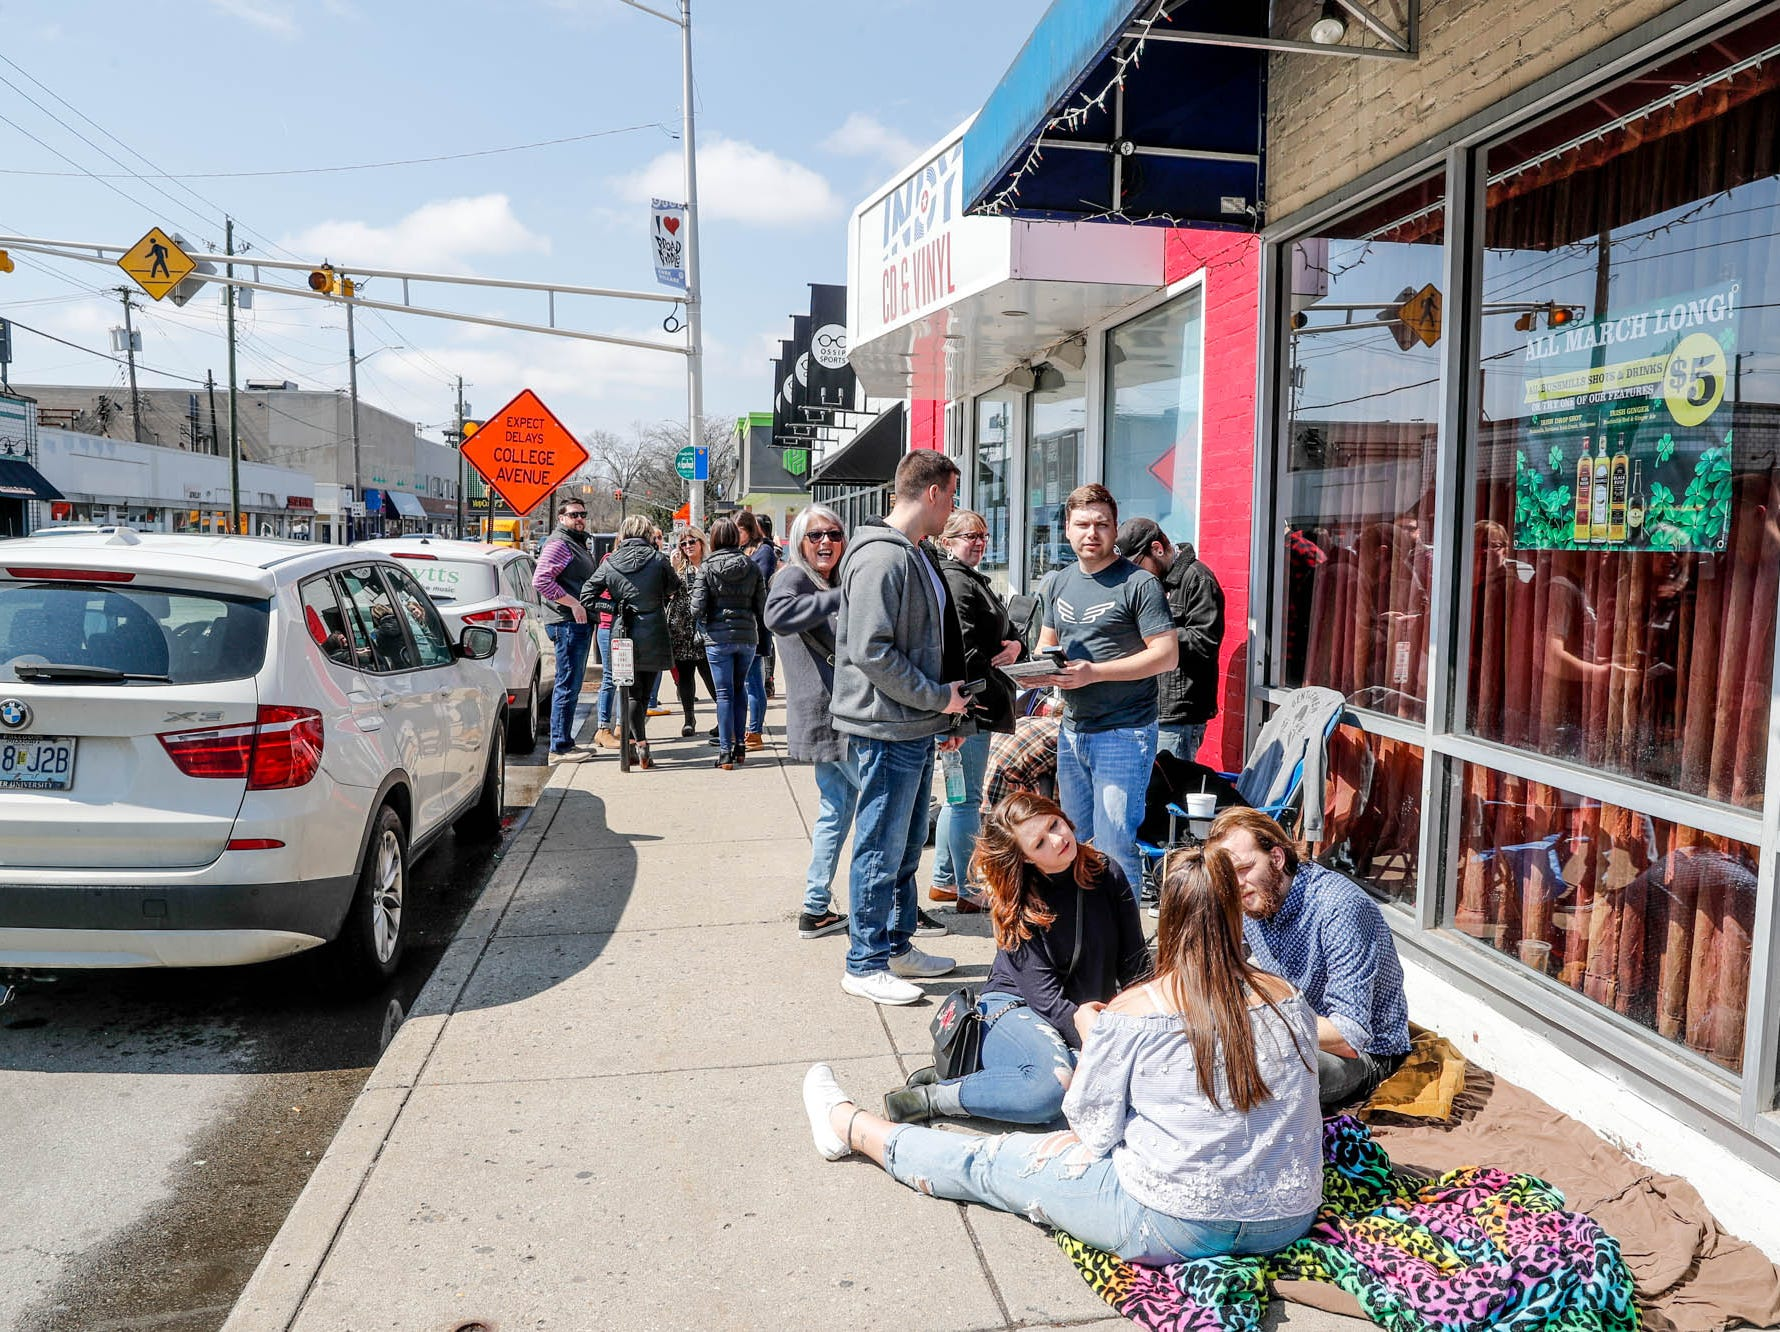 Mumford & Sons fans wait outside since early this morning to be first in line for the band's special in-store appearance at Indy CD & Vinyl on Monday, March 25, 2019.